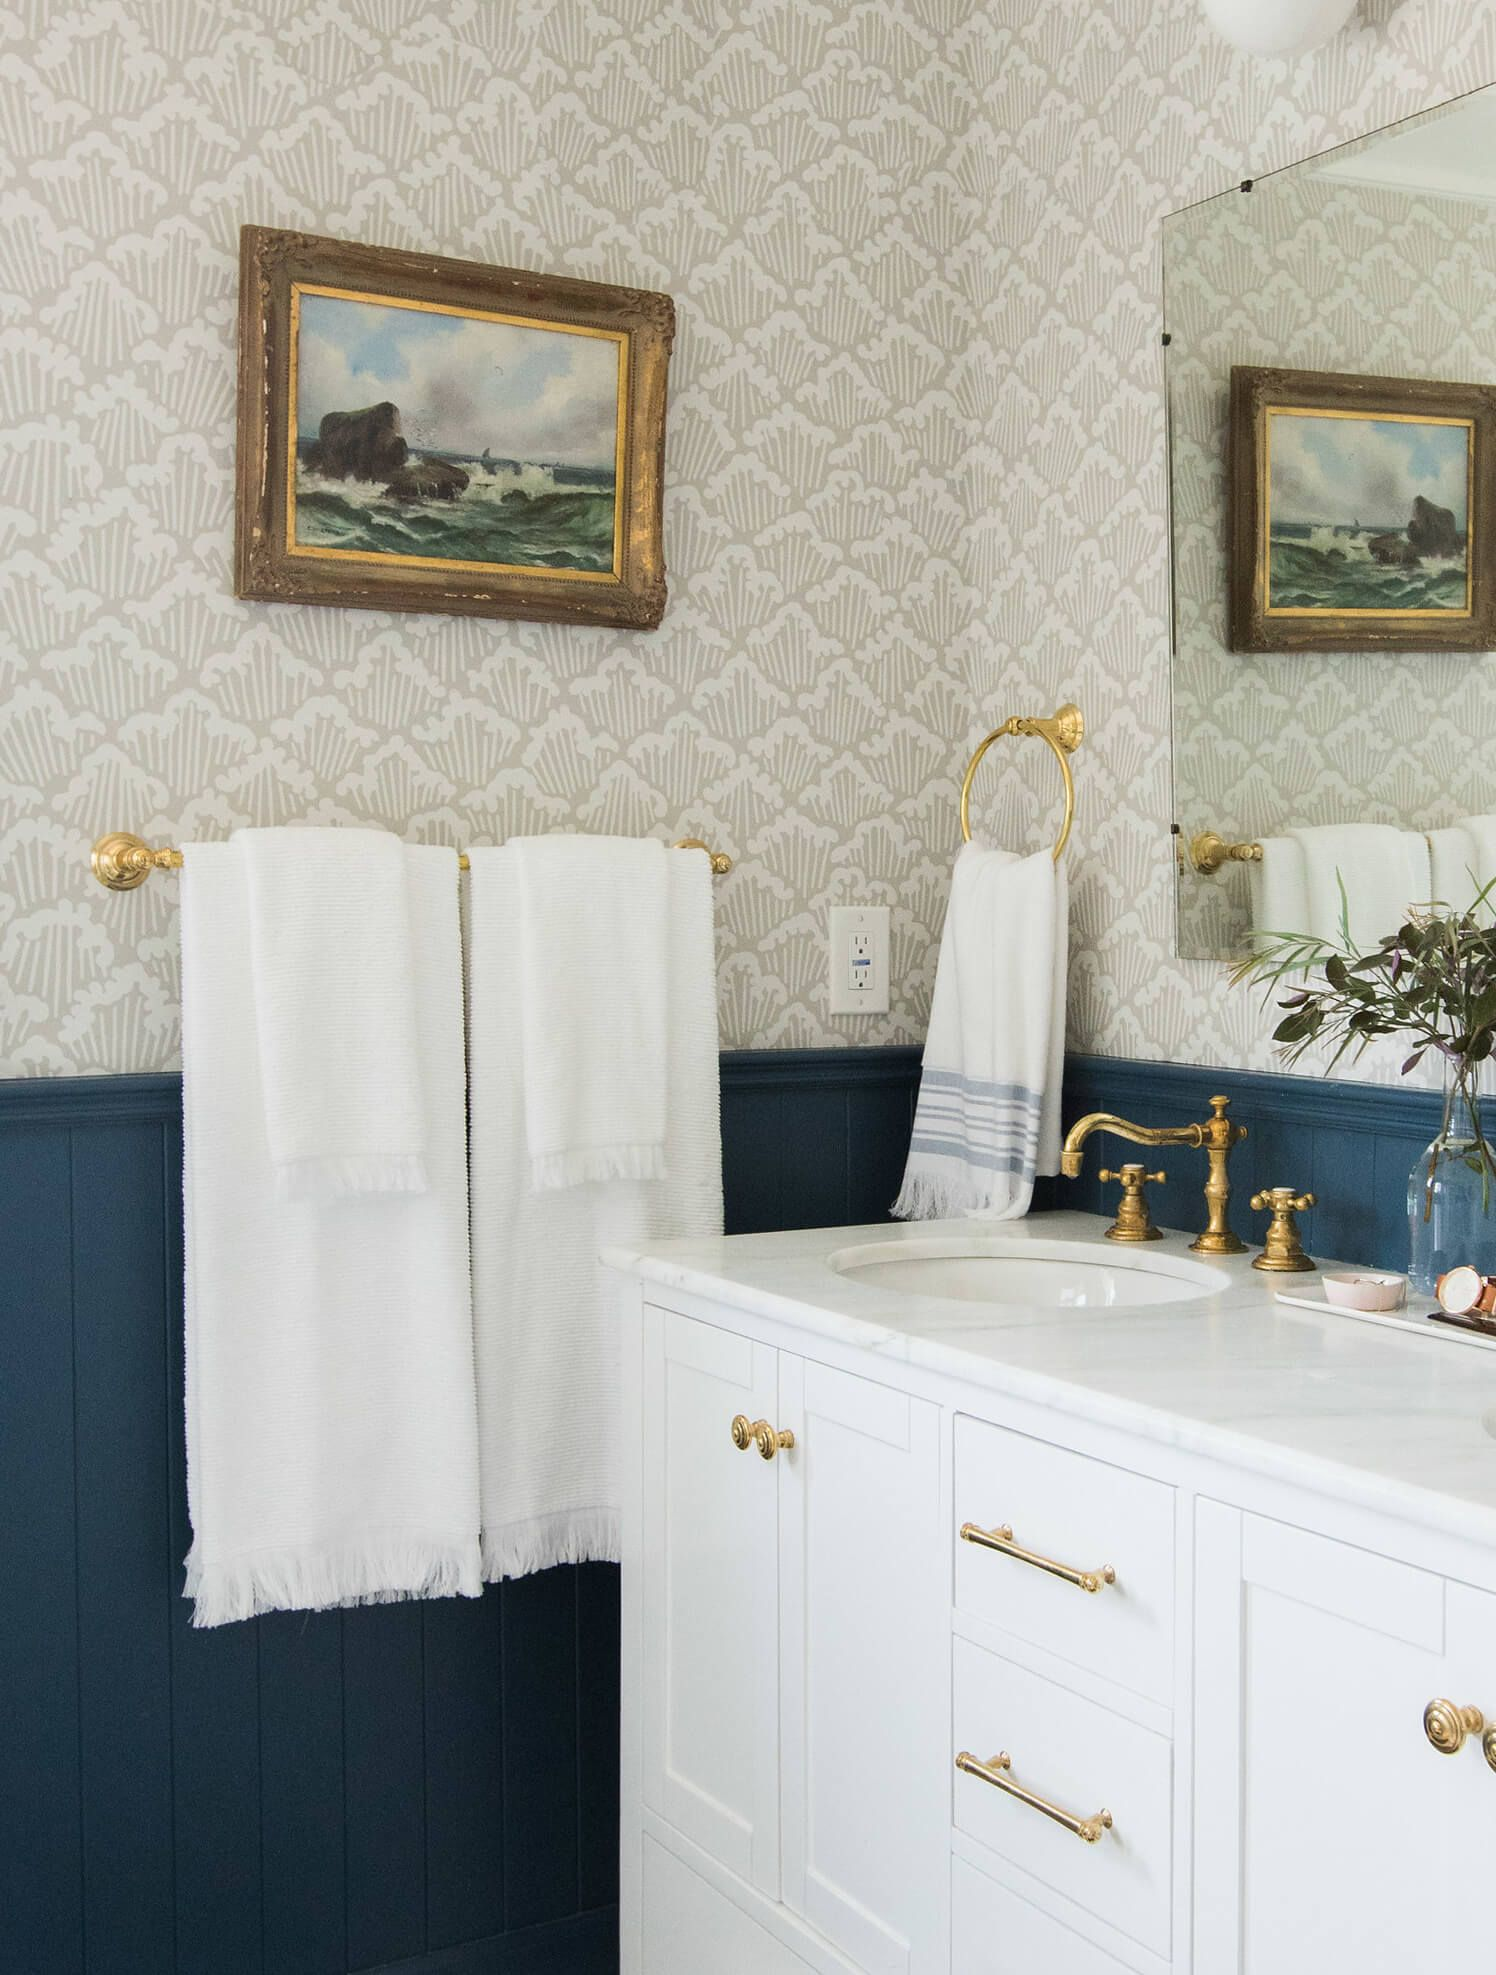 12 Alternatives Where To Put Towel Bar In Small Bathroom You Need